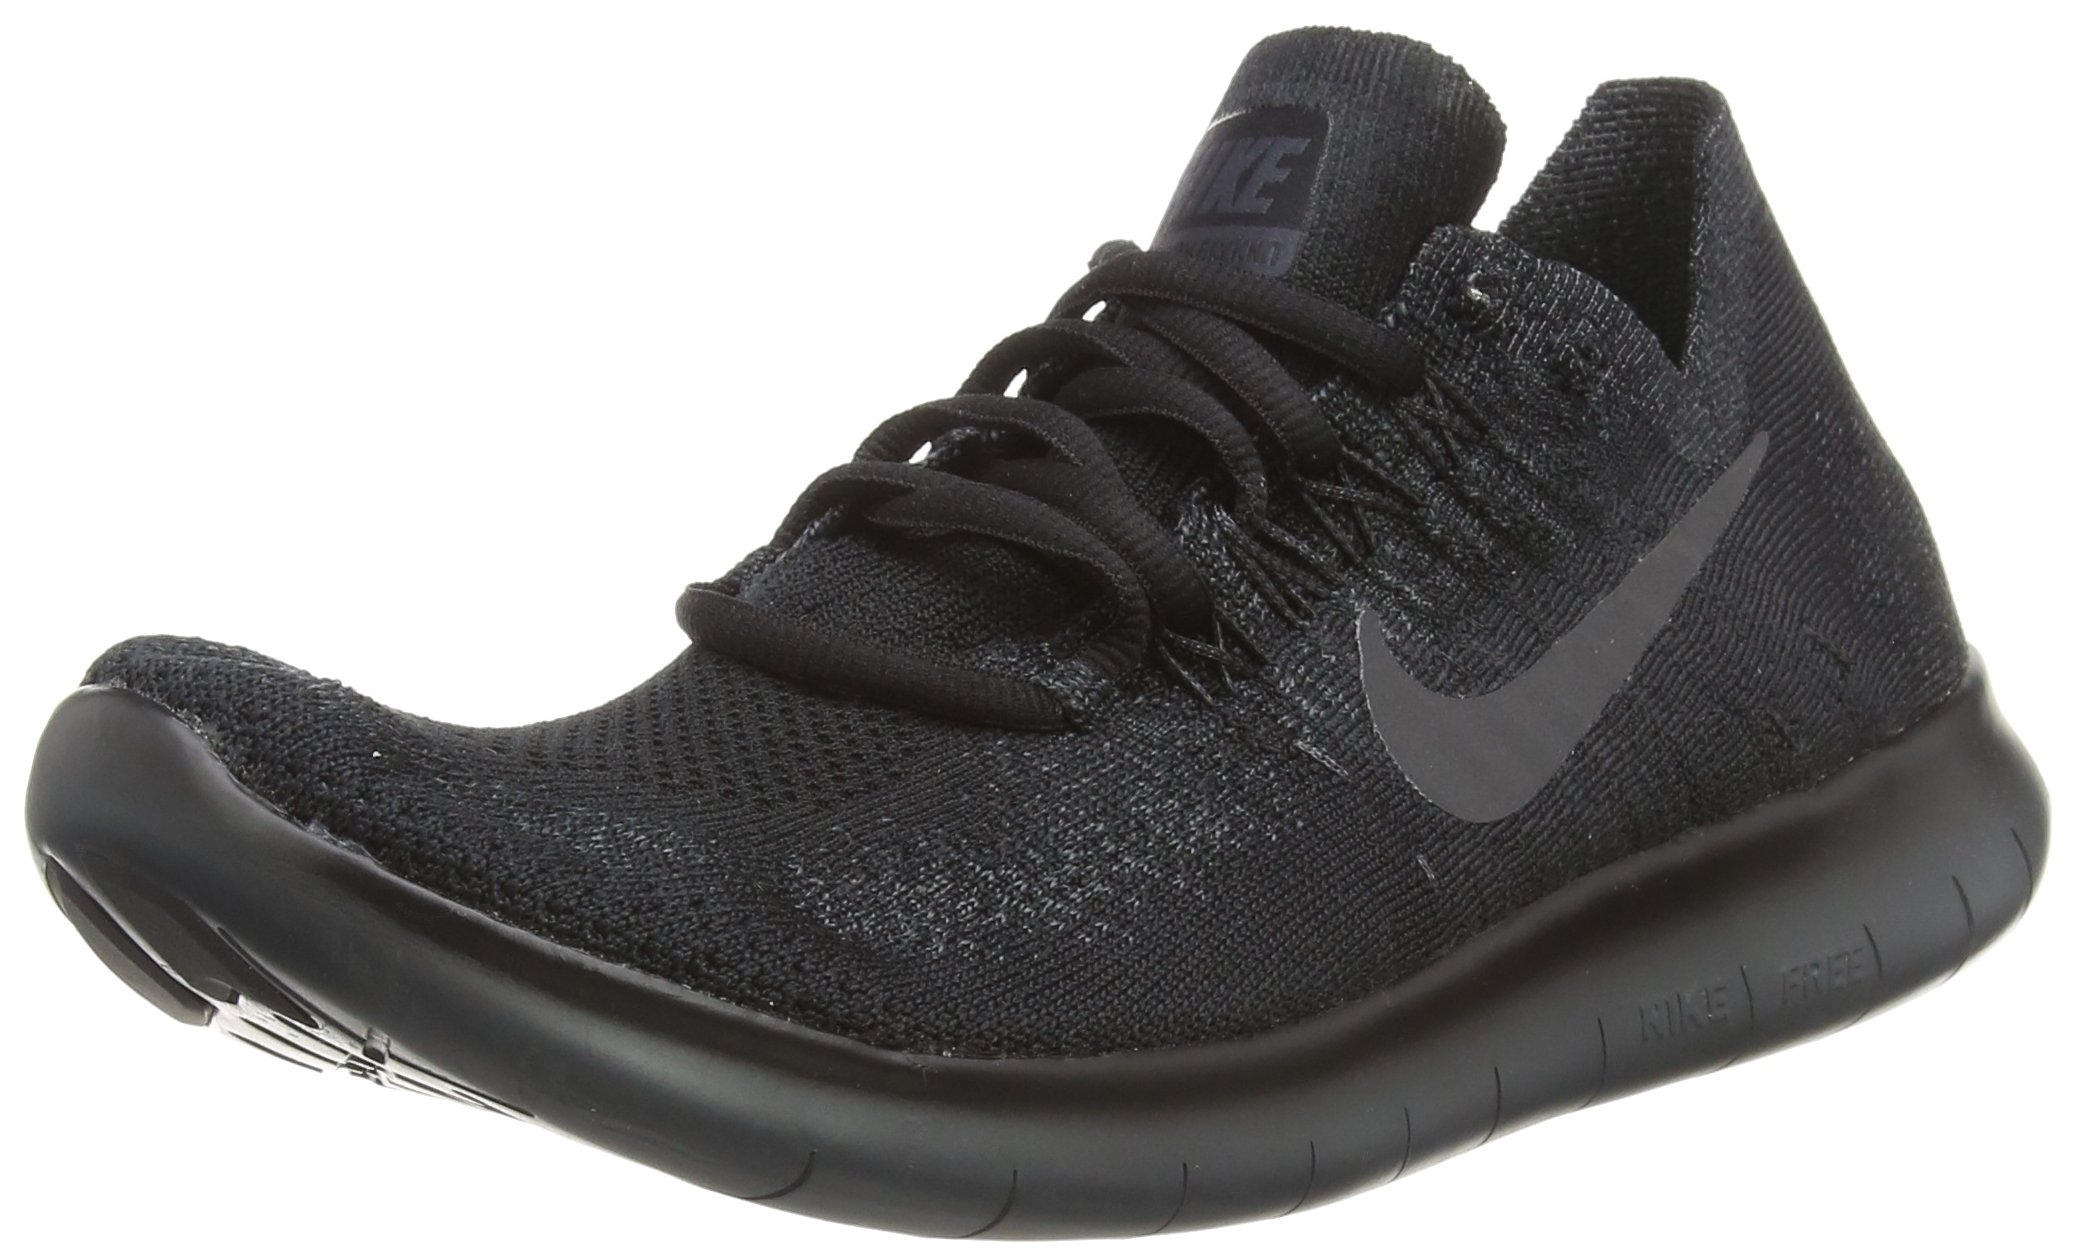 13dba4107fba Galleon - Nike Mens Free RN Flyknit 2017 Running Shoes Black Anthracite  880843-010 Size 11